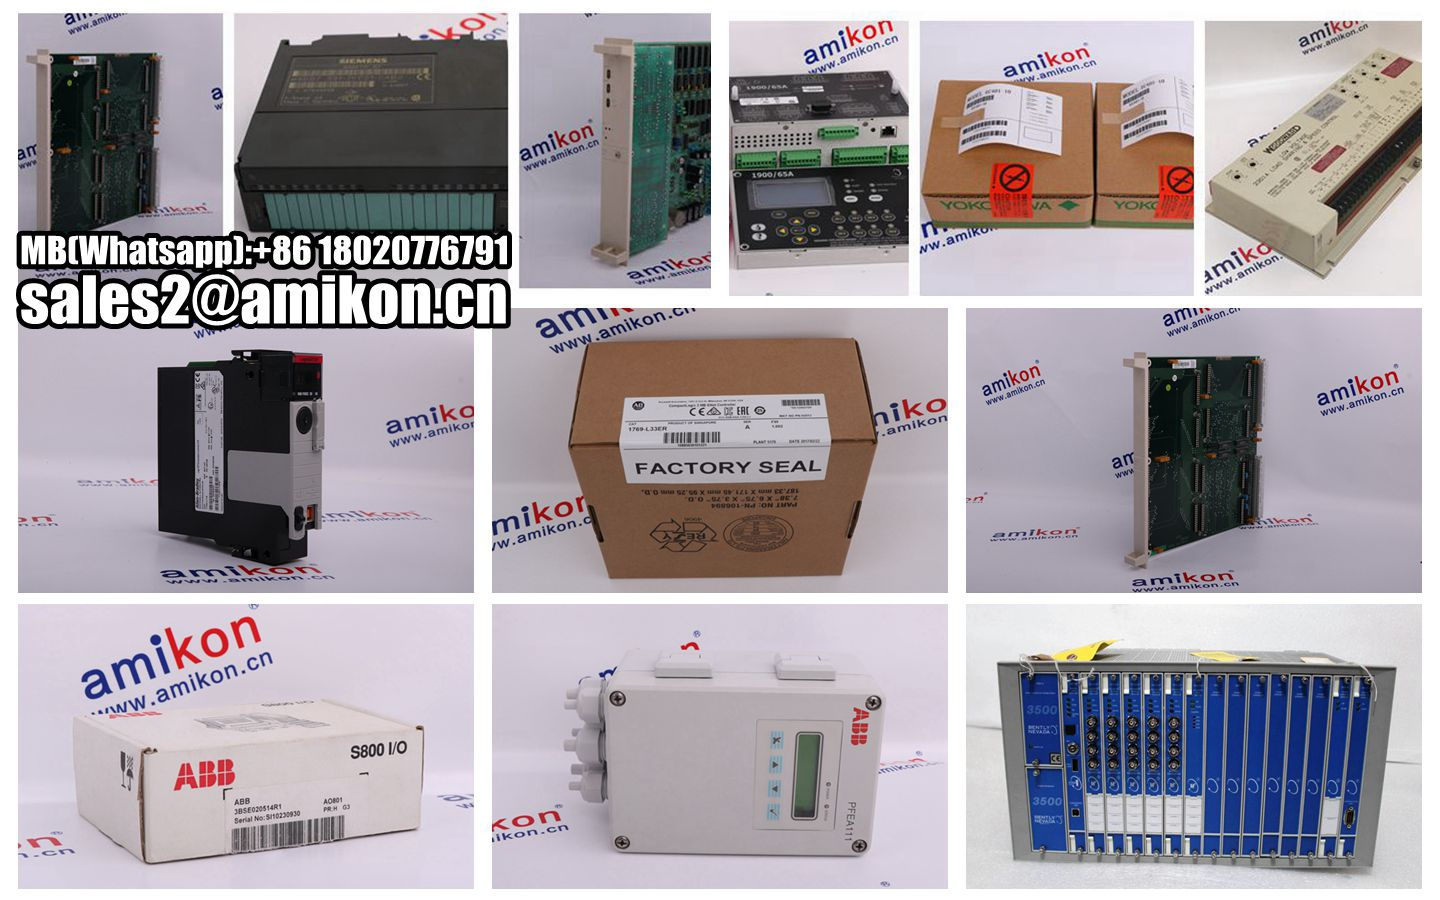 6ES7590-1AB60-0AA0 SIEMENS SIMATIC S7-300 modules SALE PRICE